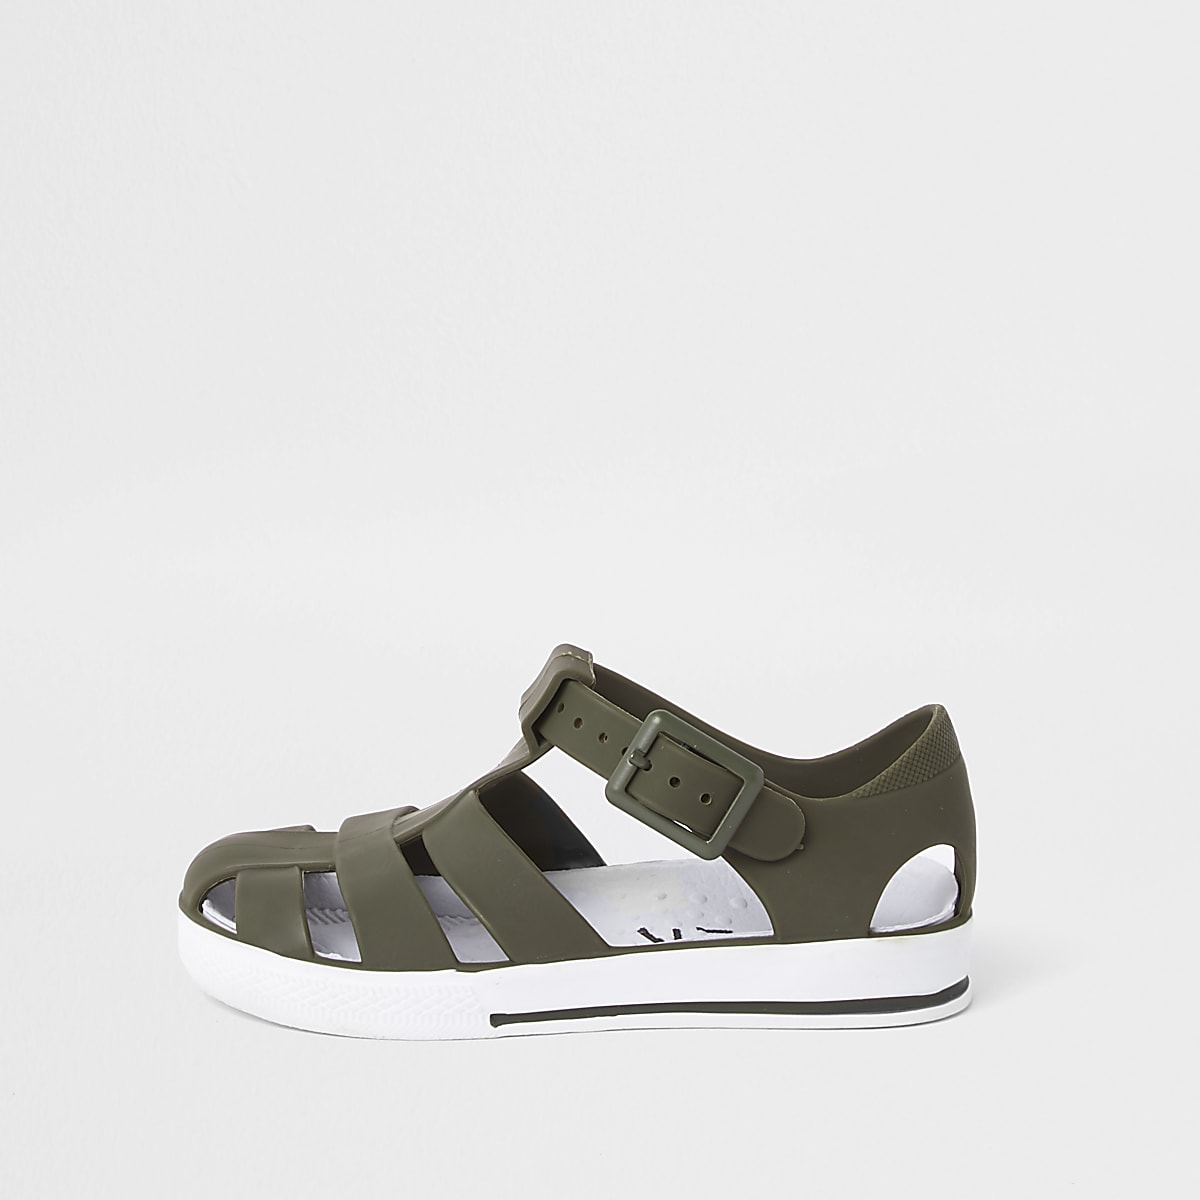 74921f26f23a0a Mini boys khaki jelly sandals - Baby Boys Sandals - Baby Boys Shoes & Boots  - Mini Boys - boys